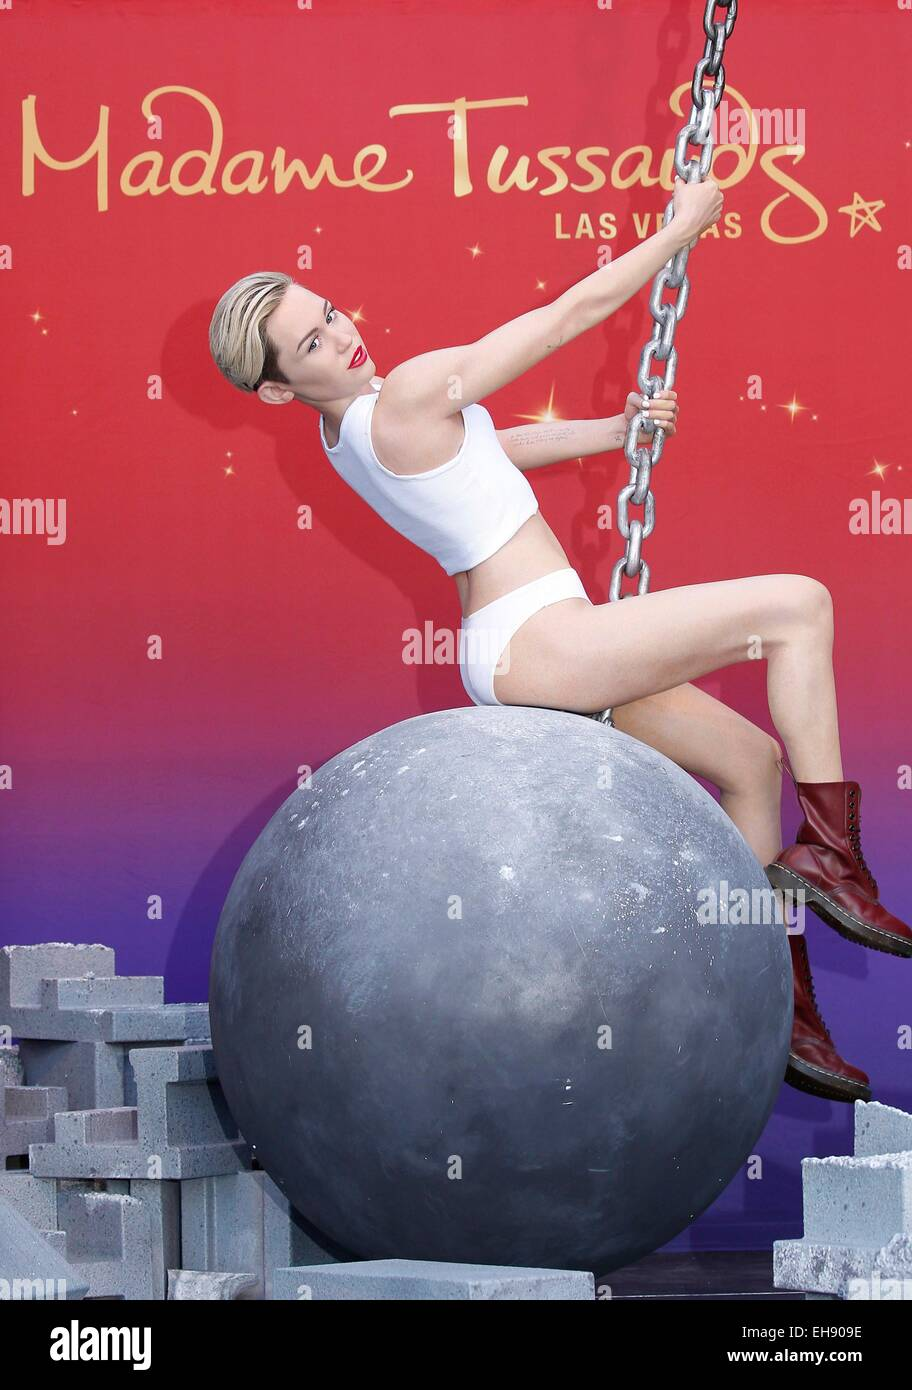 Las Vegas, NV, USA. 9th Mar, 2015. Miley Cyrus Figure at the press conference for Miley Cyrus Wrecking Ball Figure - Stock Image